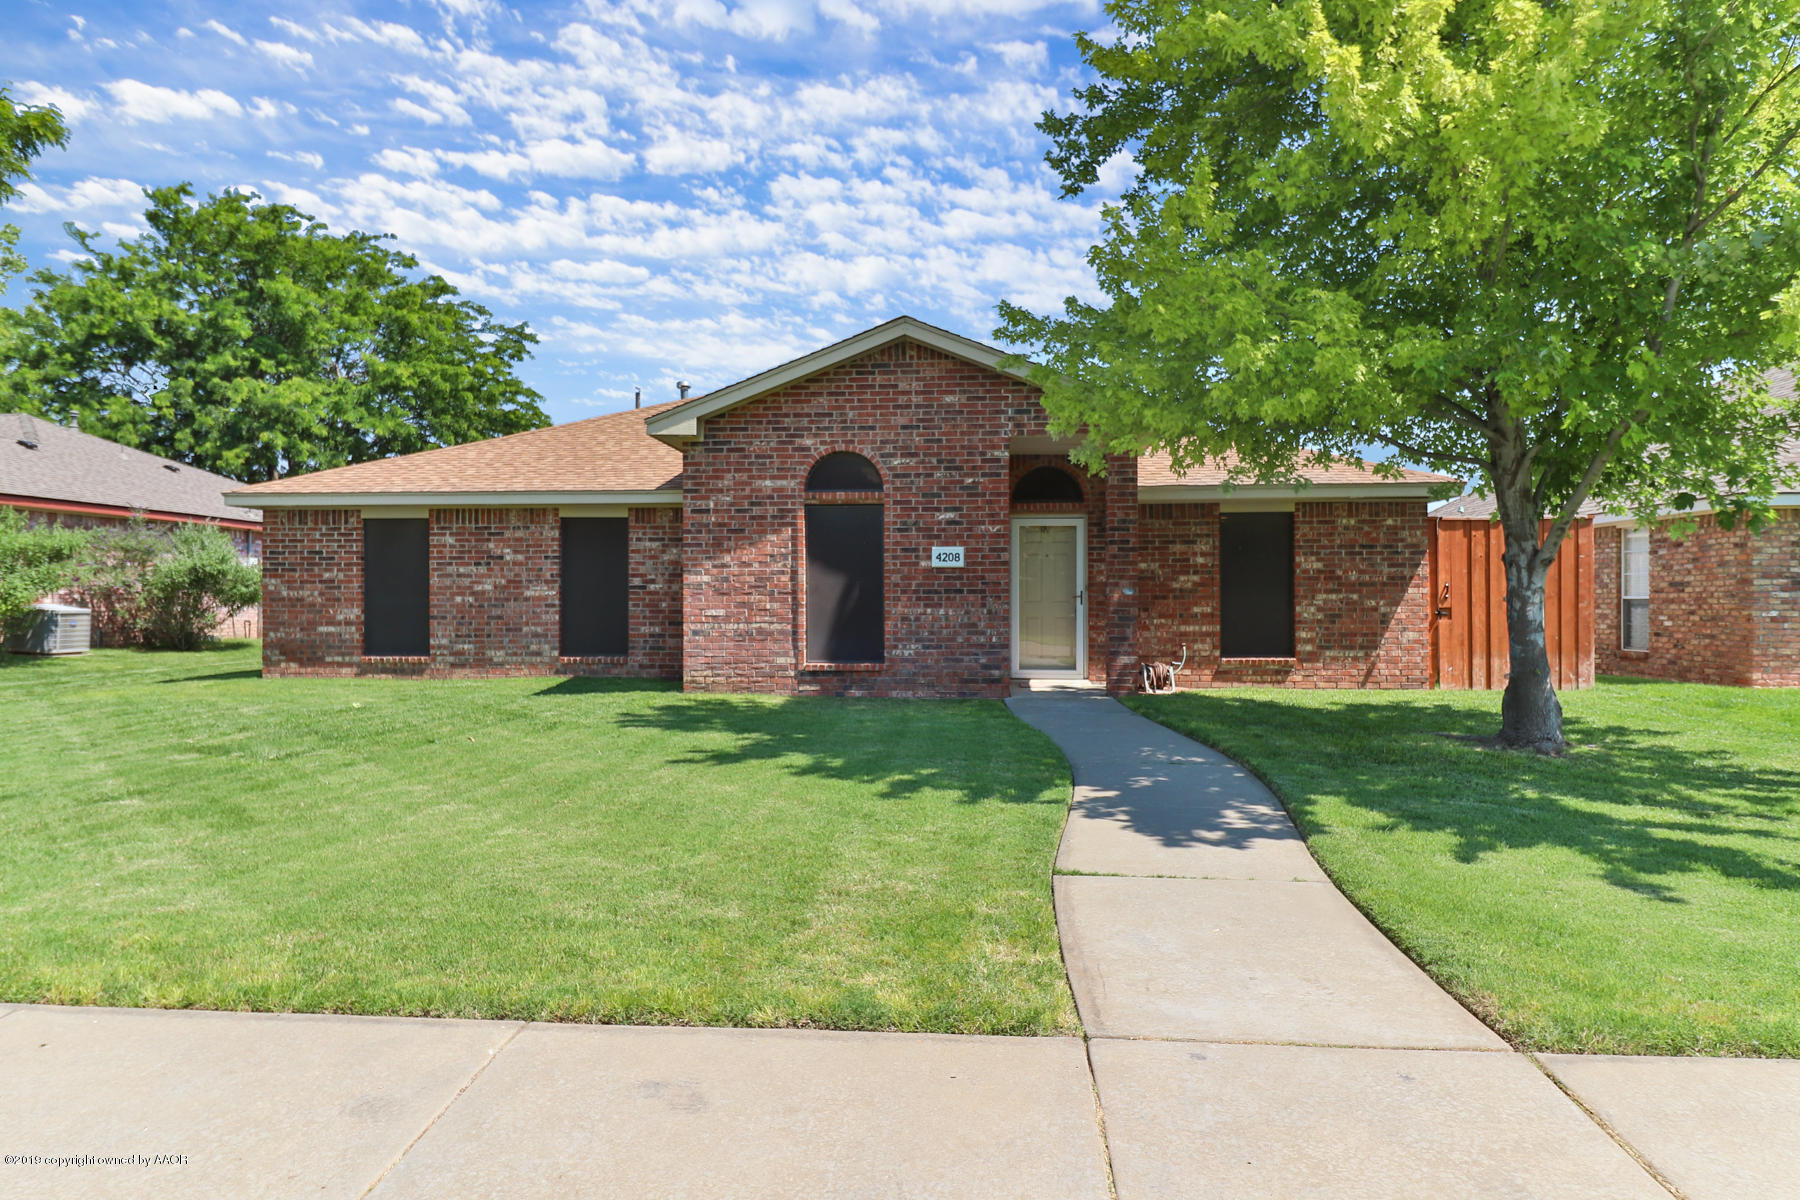 4208 Rondo Ave Amarillo Tx Mls 19 4340 Welcome To